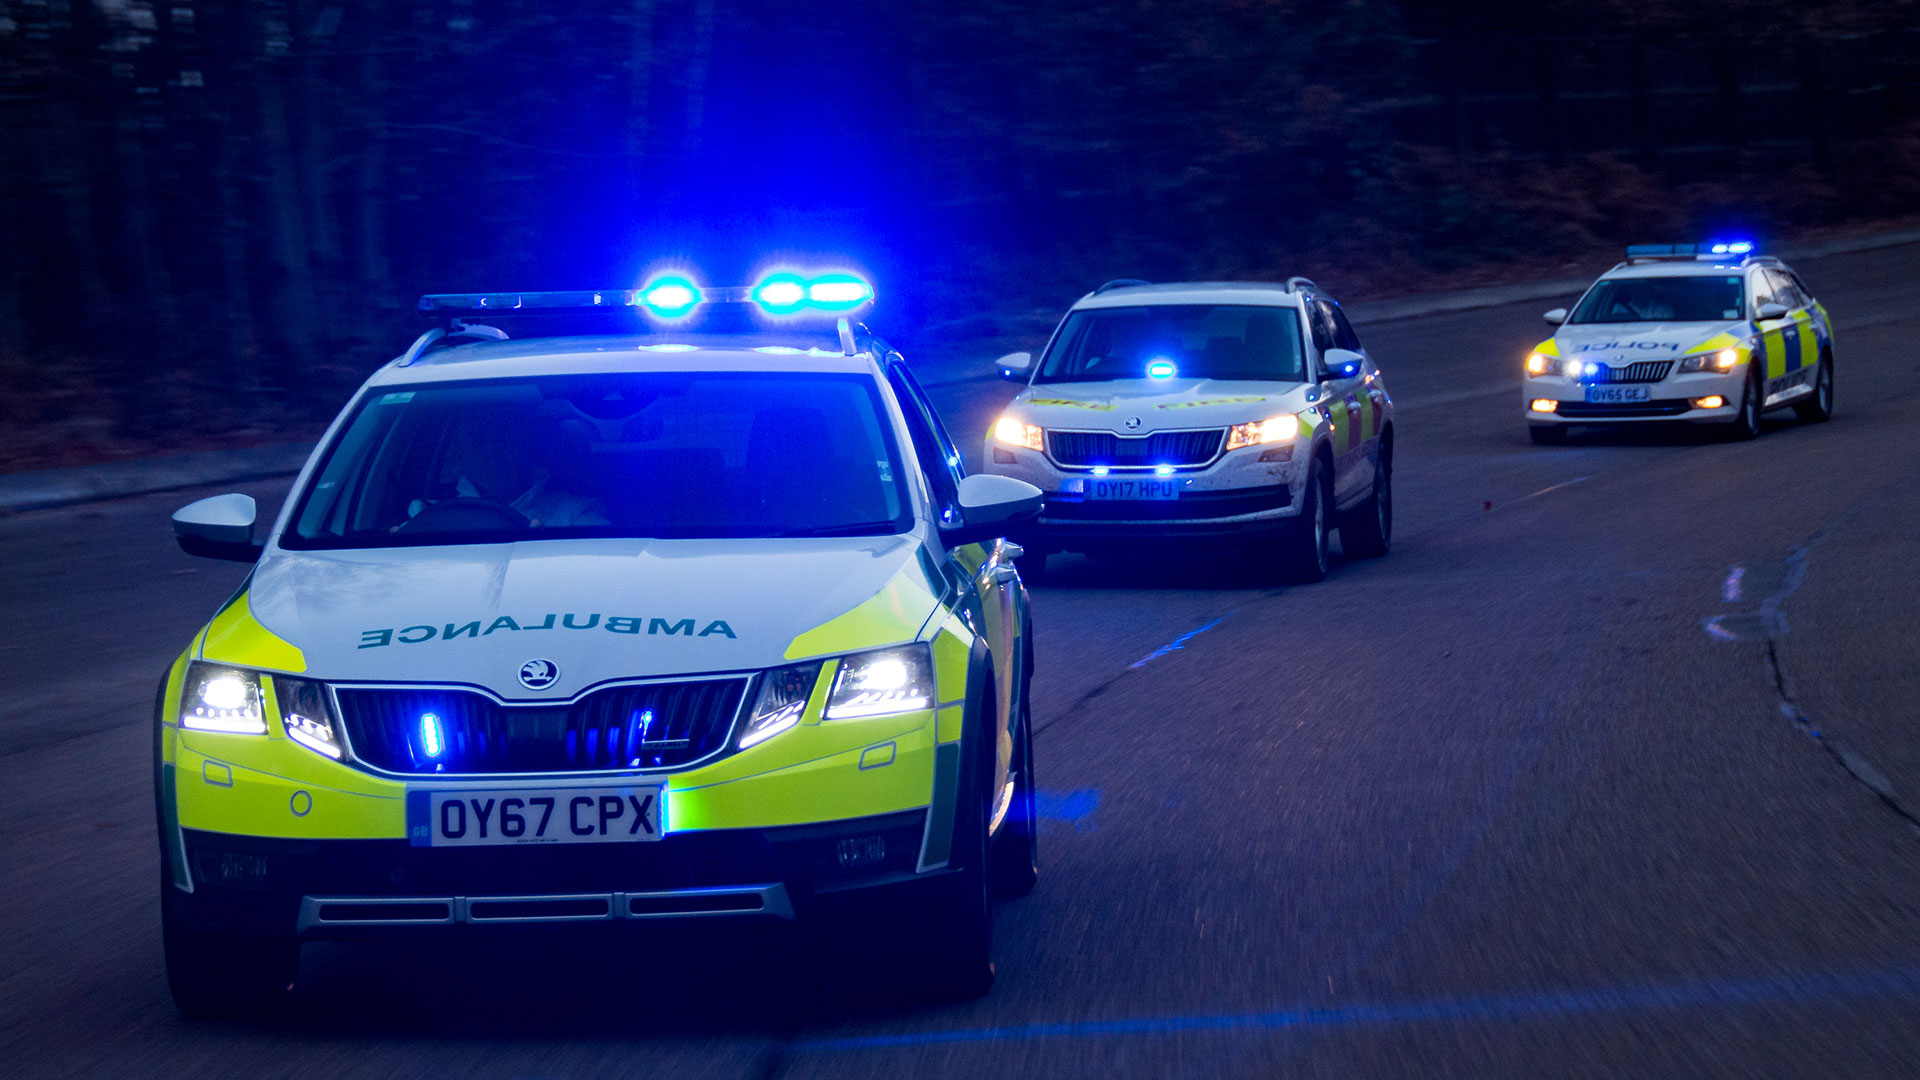 What's it like to drive a police car? | Auto Trader UK